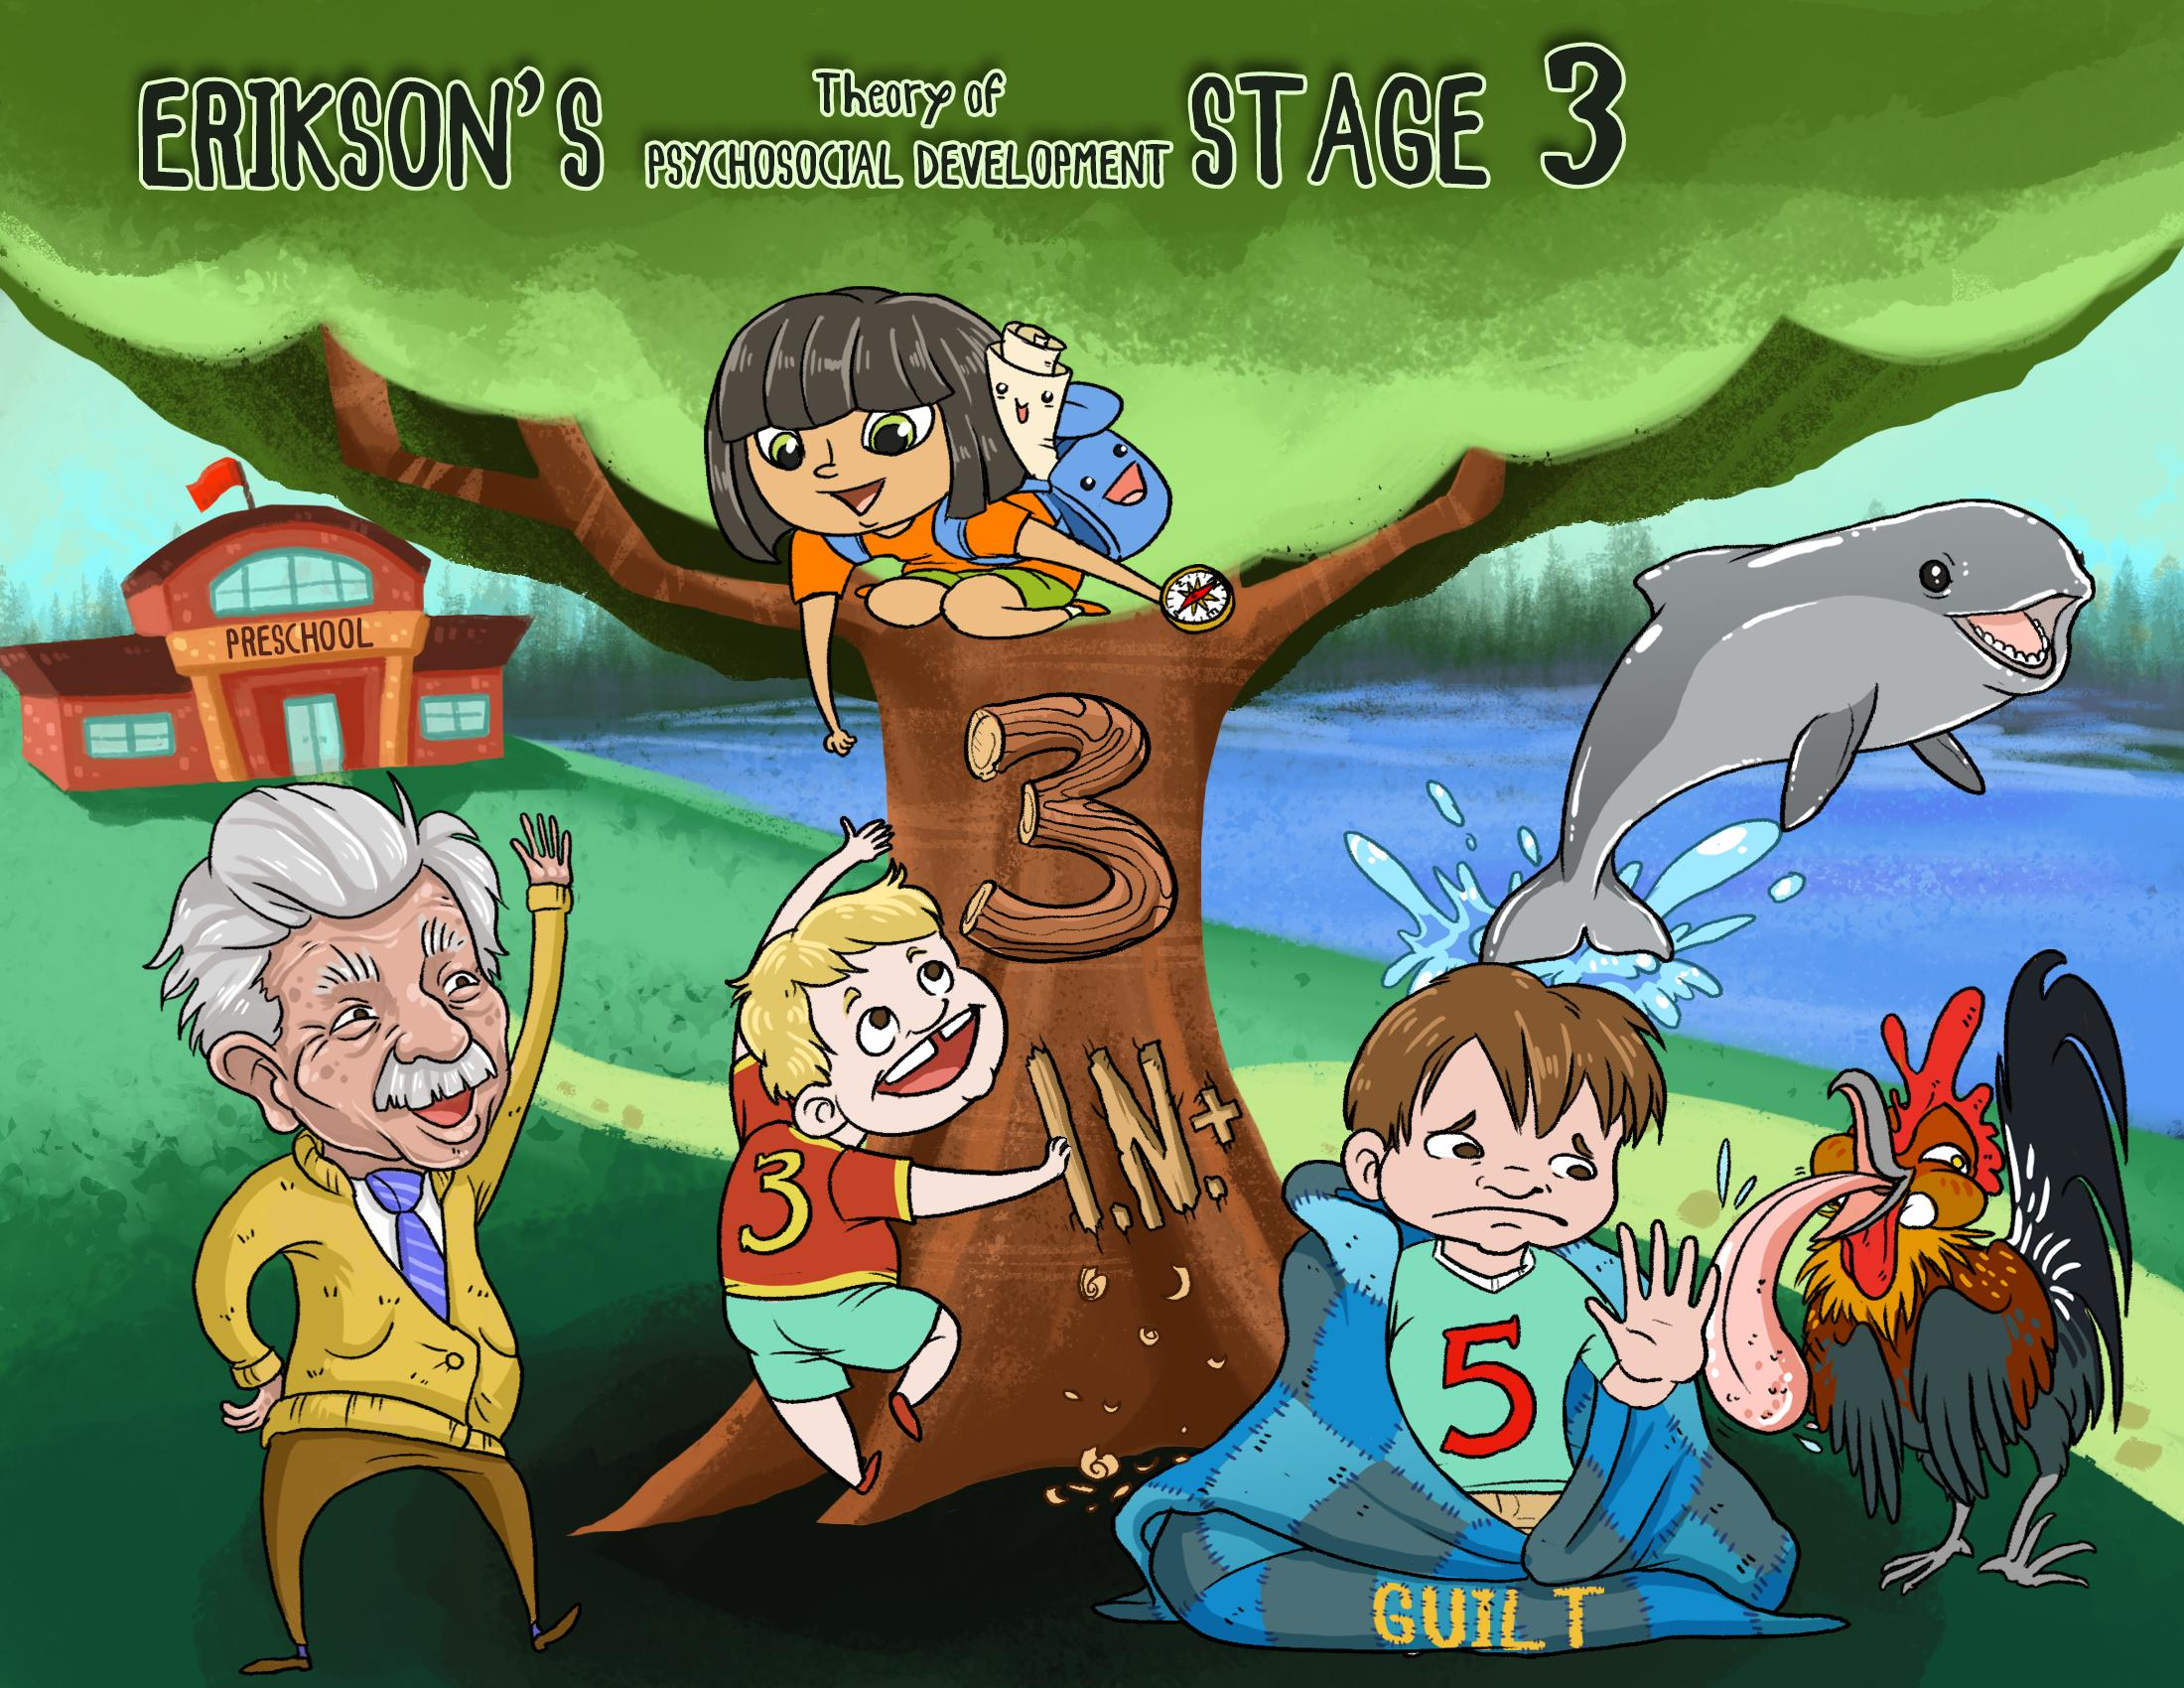 Erikson's Theory Of Psychosocial Development - Stage 3 (Preschool Age)